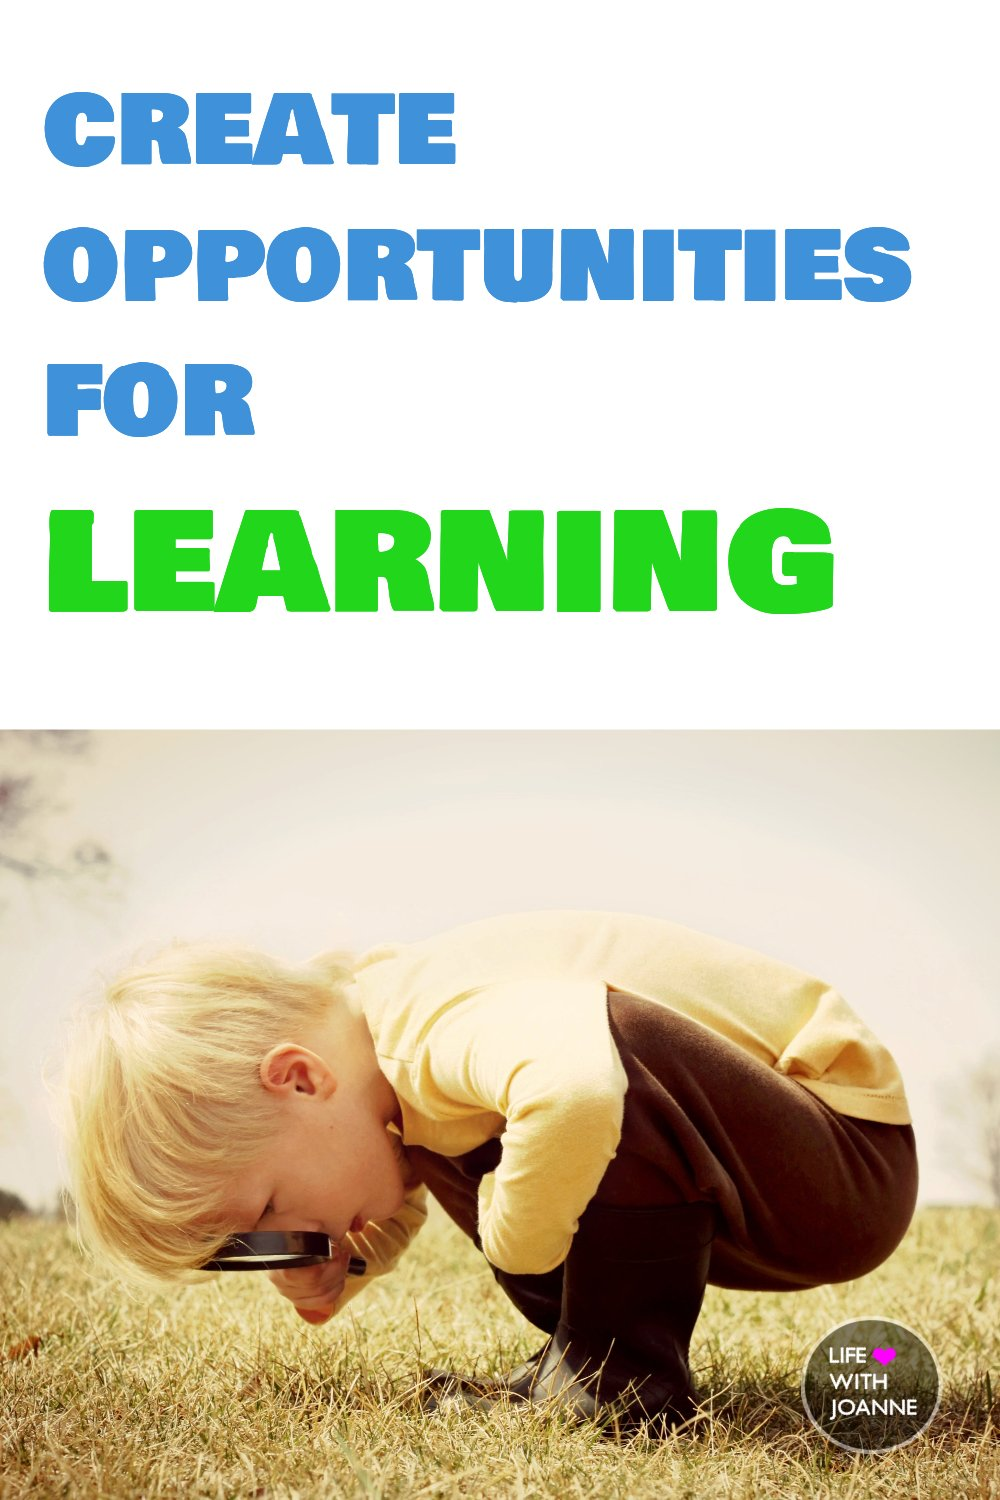 Create opportunities for learning